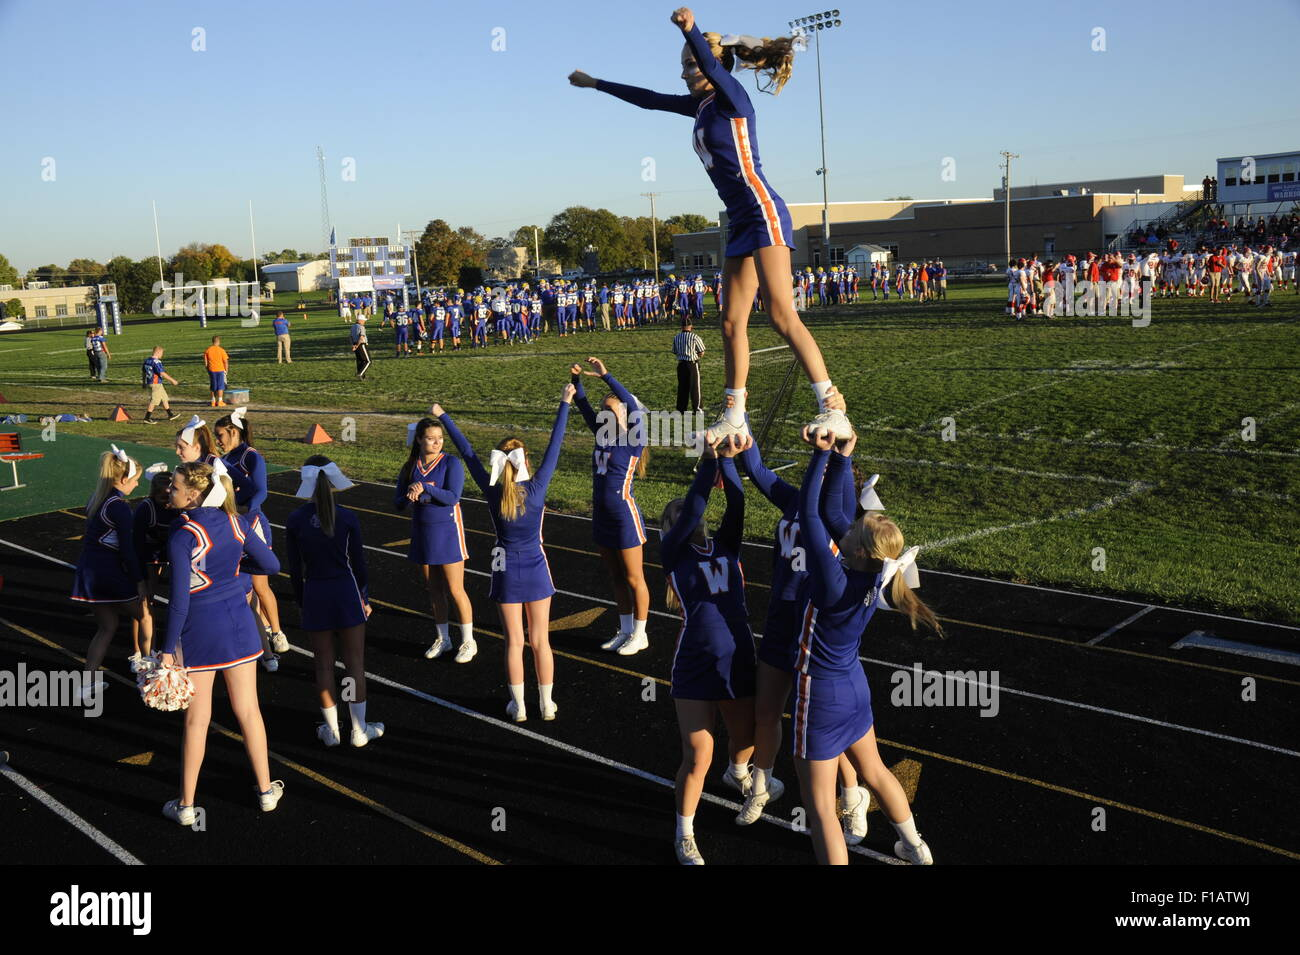 Cheerleaders at football game, Whiteland, Indiana - Stock Image